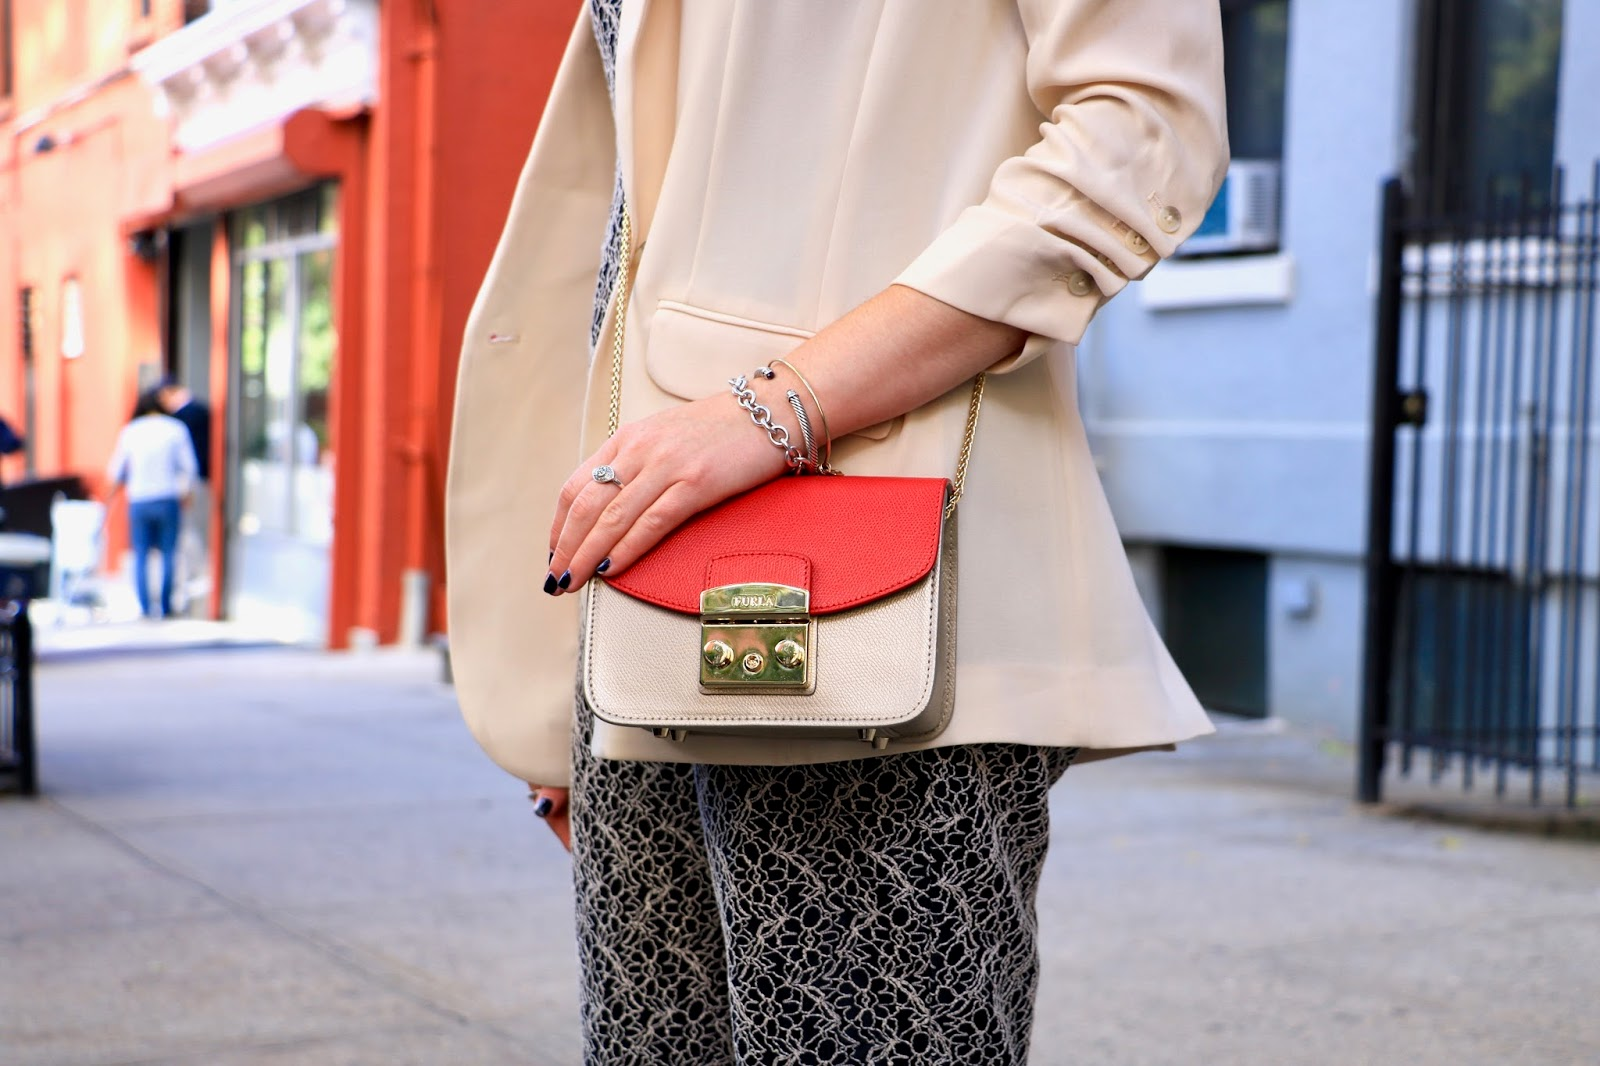 NYC fashion blogger Kathleen Harper wearing a Furla mini bag